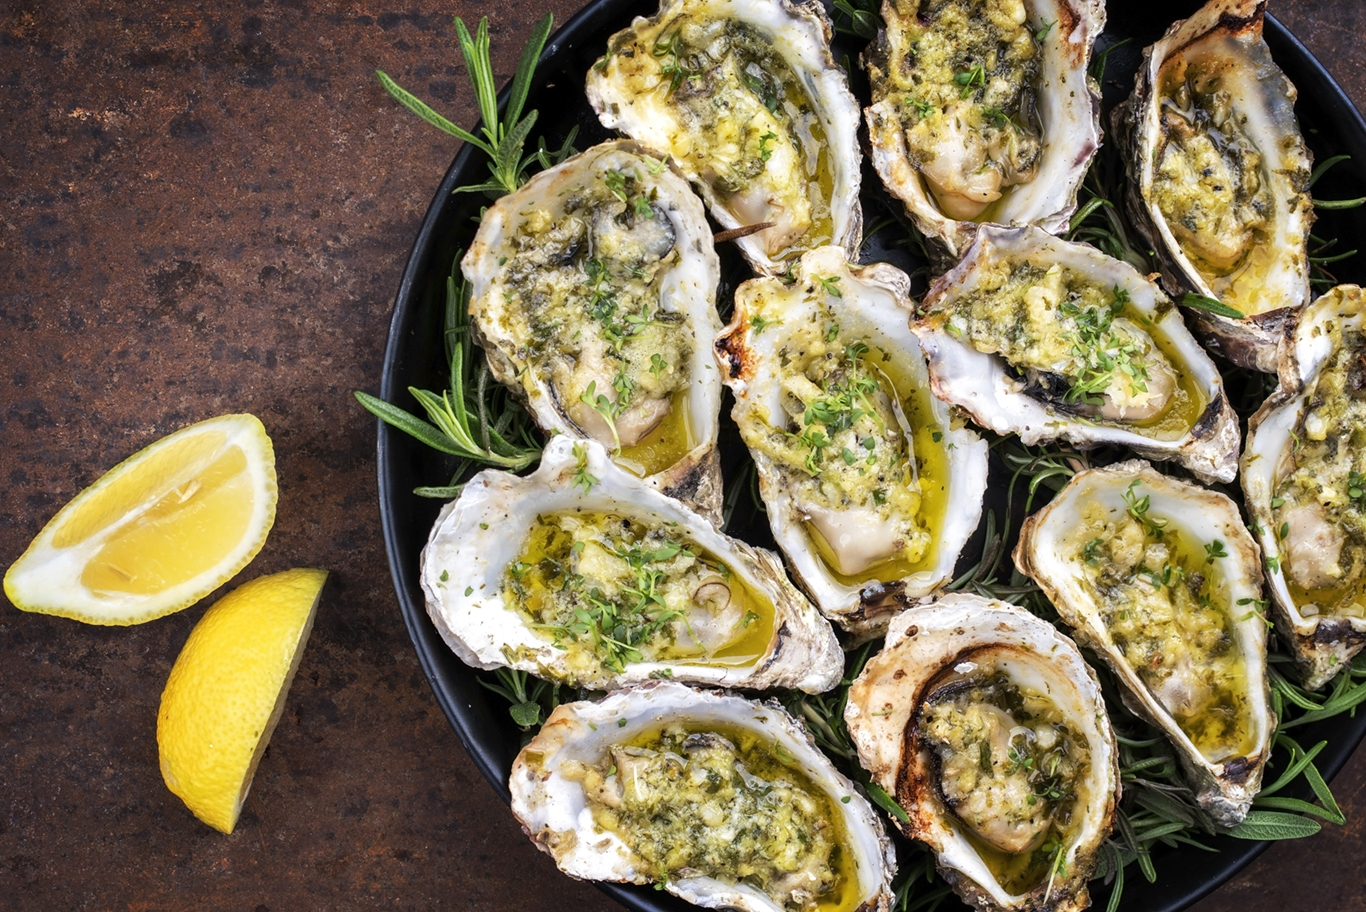 The Hangout's 12th Annual Oyster Cook-Off